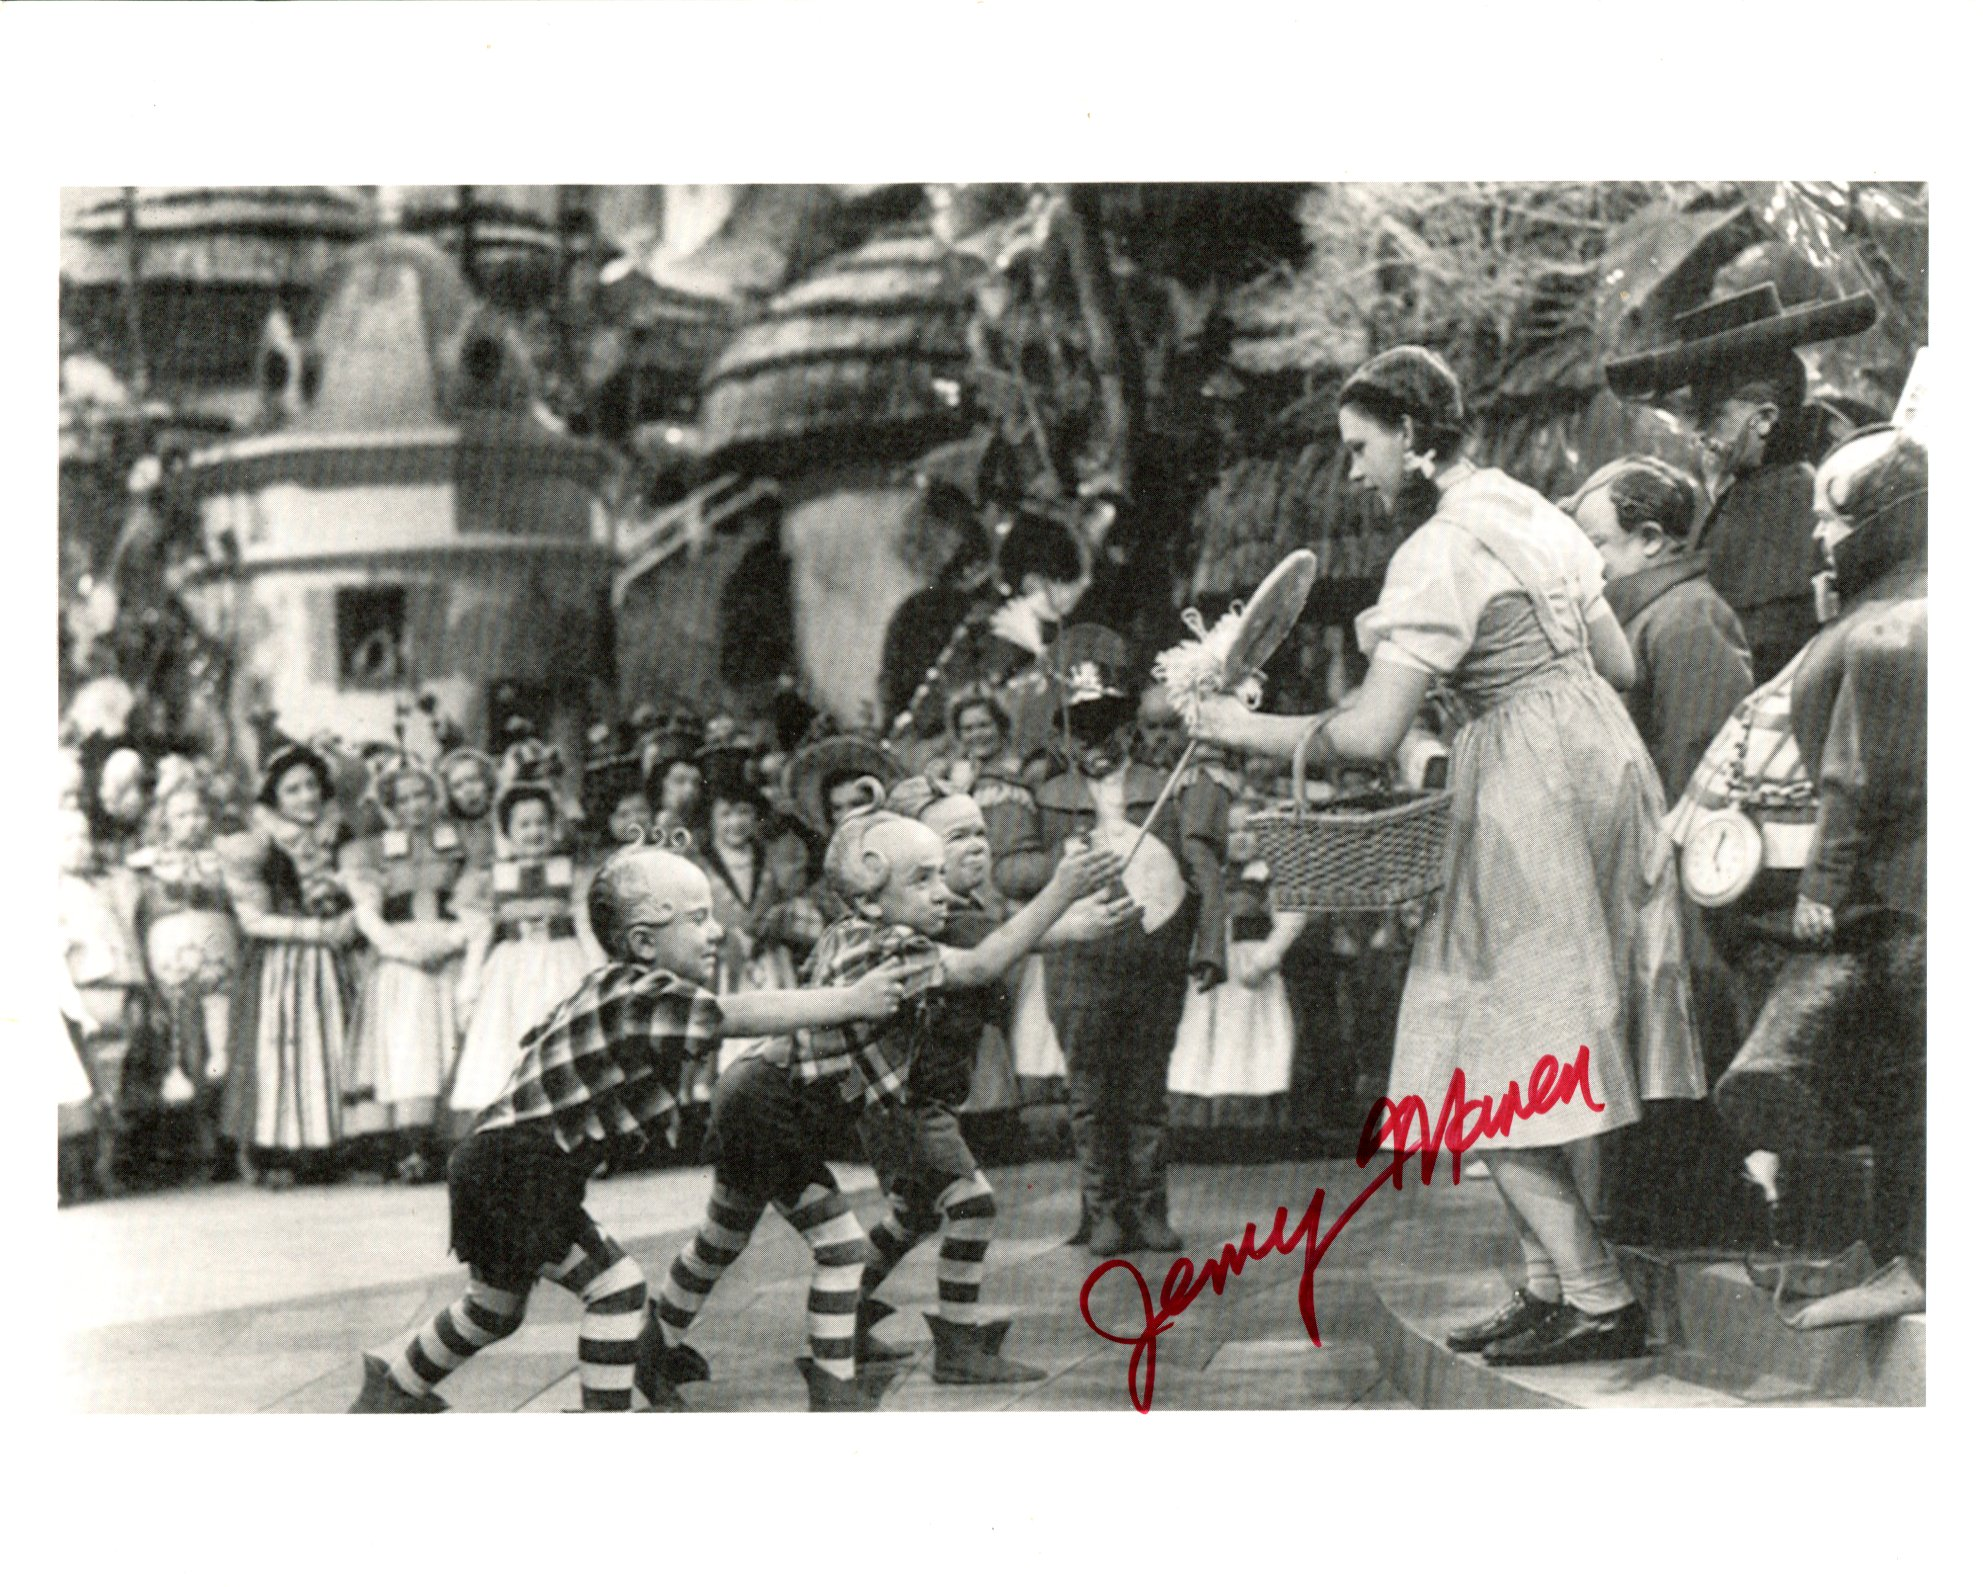 The Wizard of Oz, 8x10 scene photo signed by actor Jerry Maren who played one of the Munchkins. Good